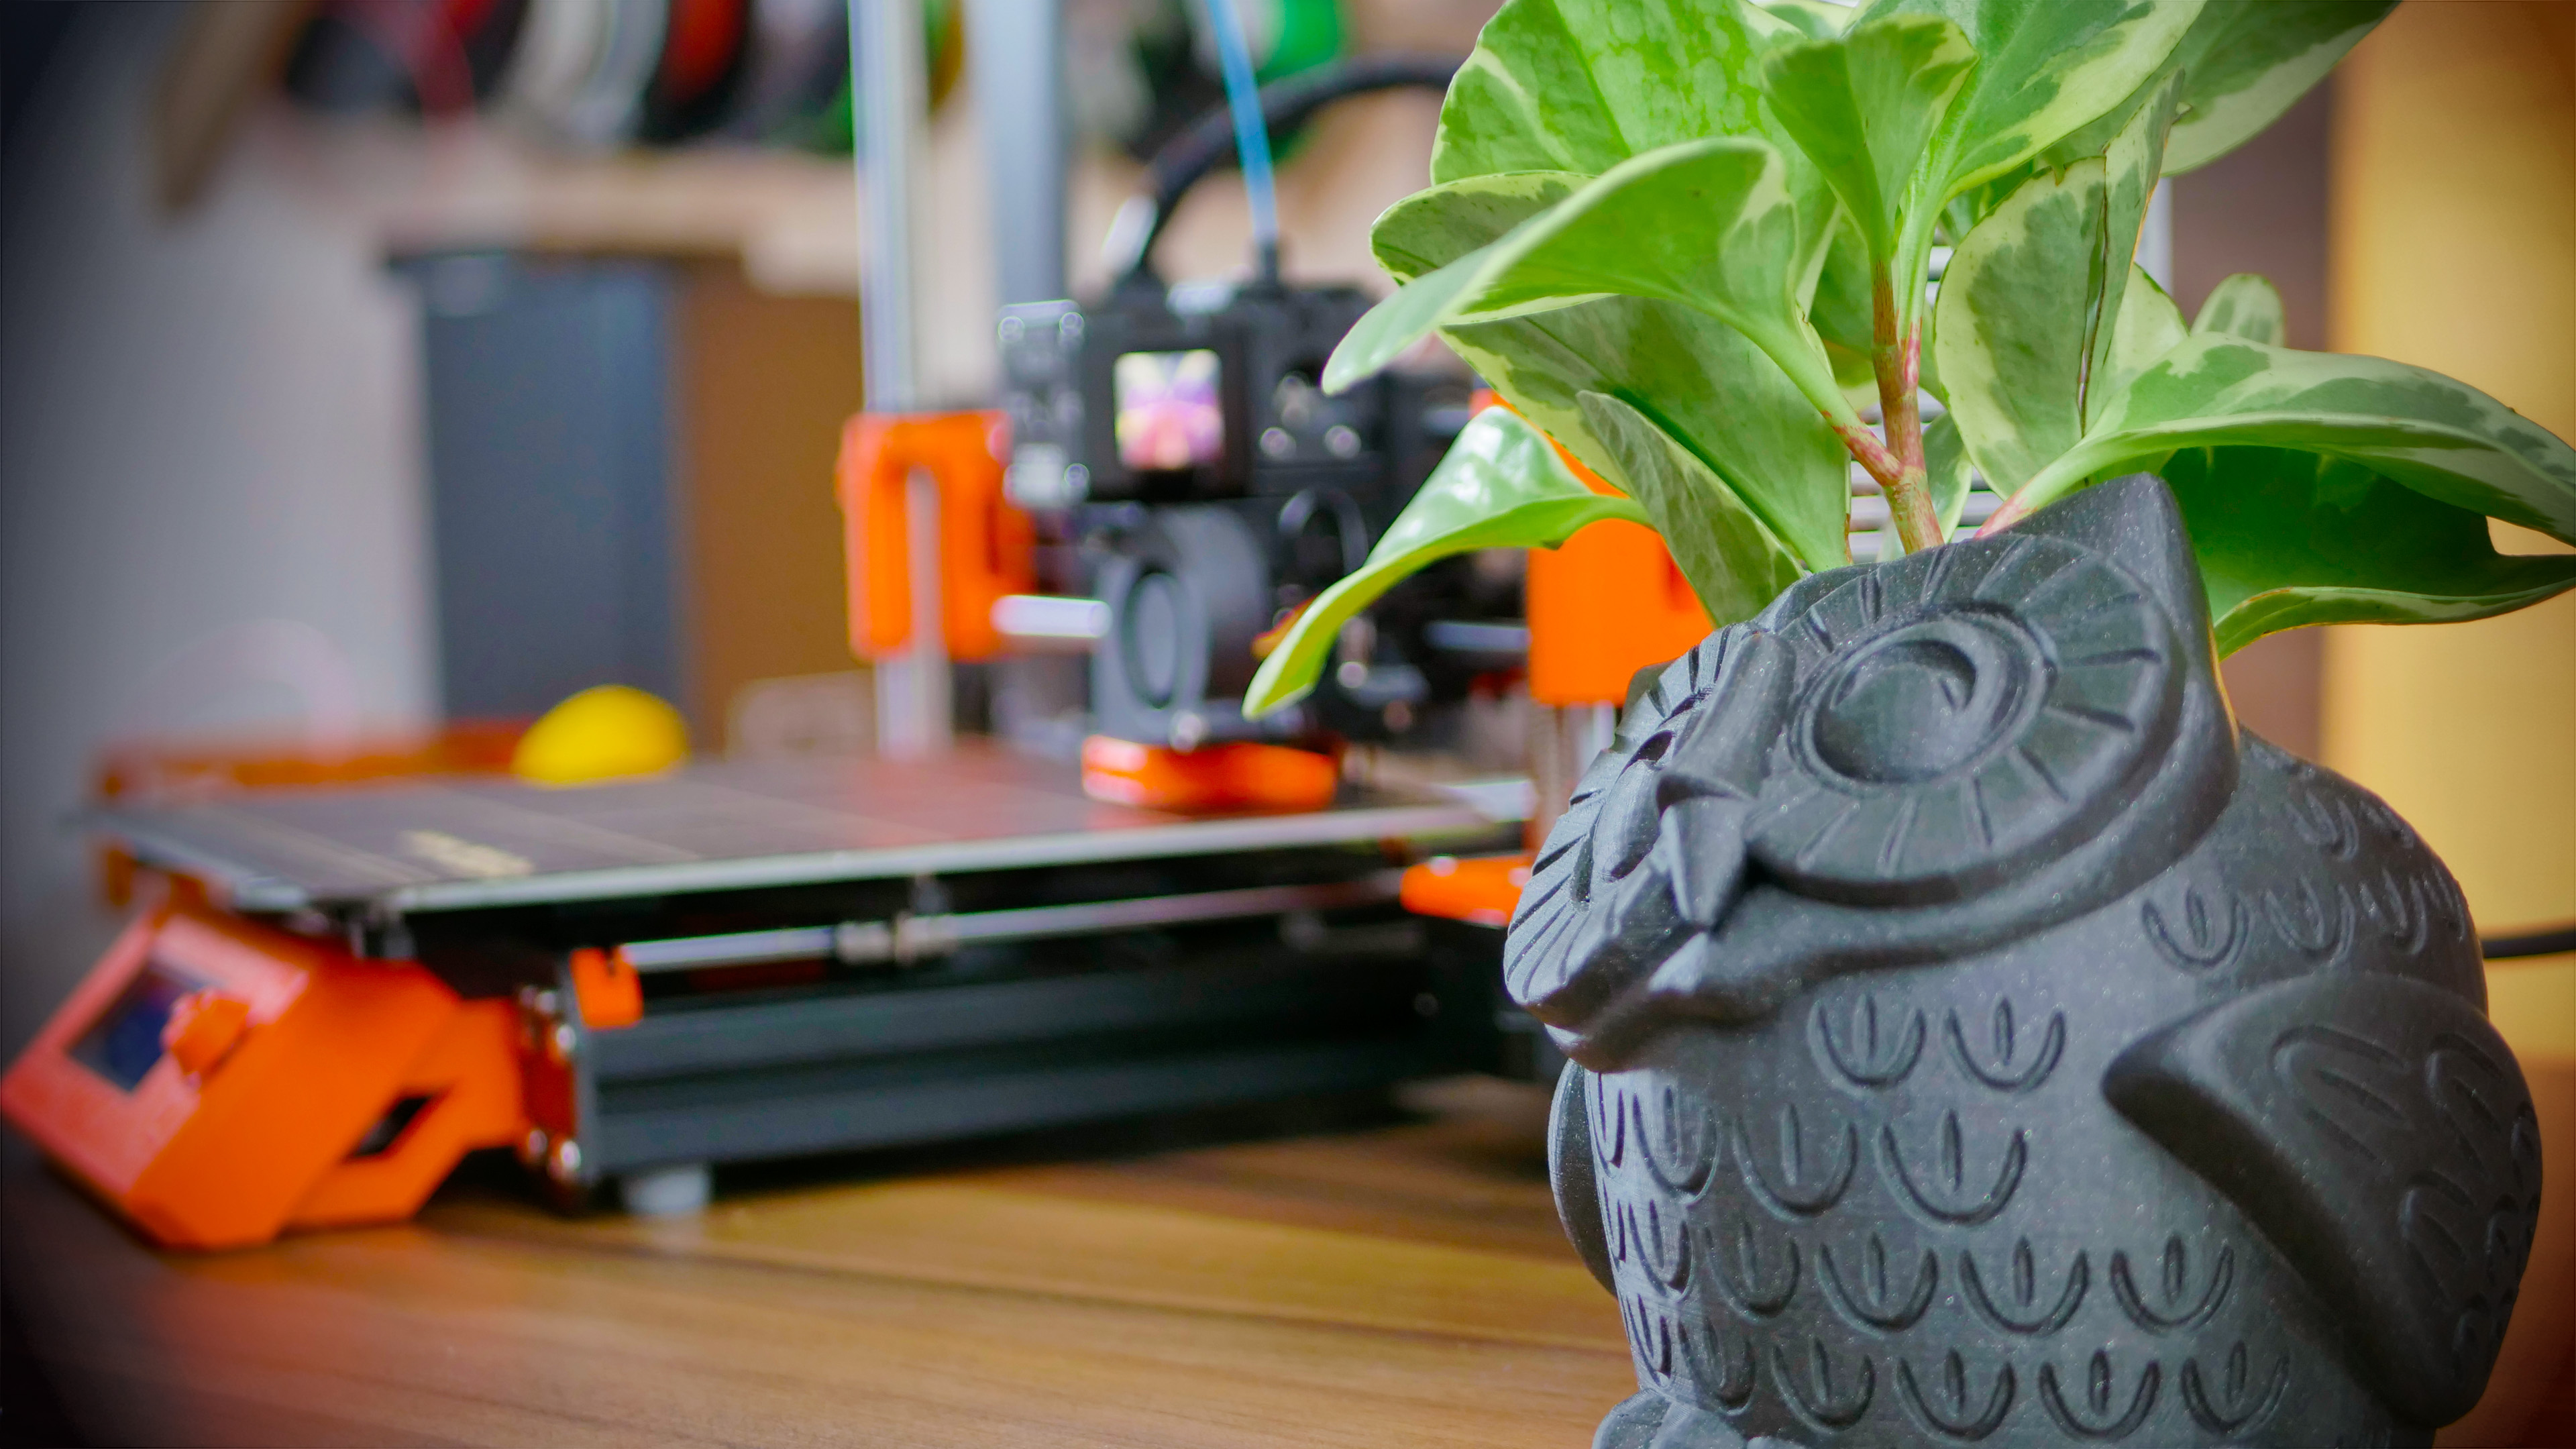 The most important 3D printer – Original Prusa i3 MK3 review!